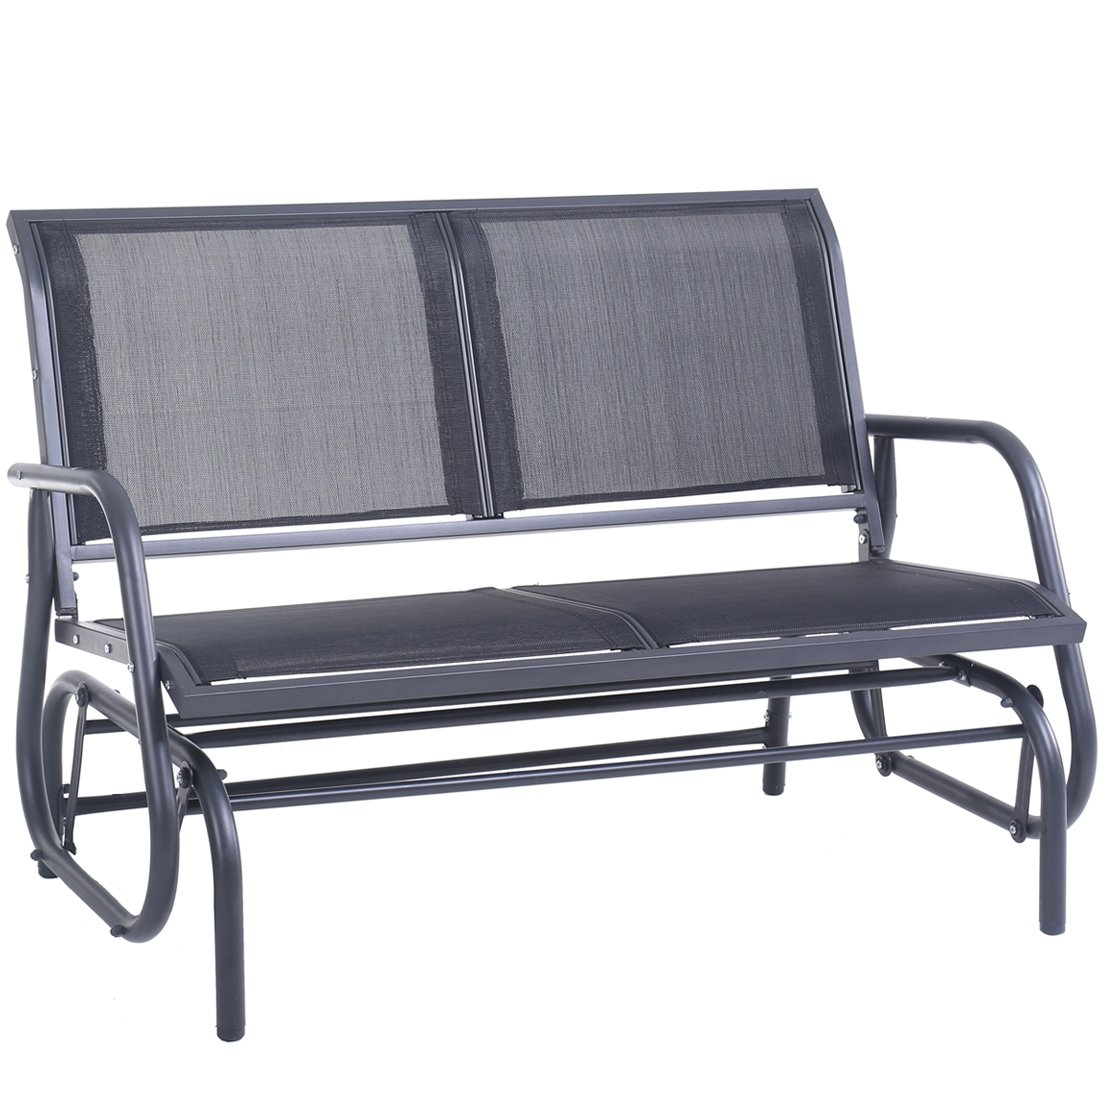 Superjare Outdoor Swing Glider Chair, Patio Bench for 2 Person, Garden Loveseat, Rocking Seating - Gray by SUPERJARE